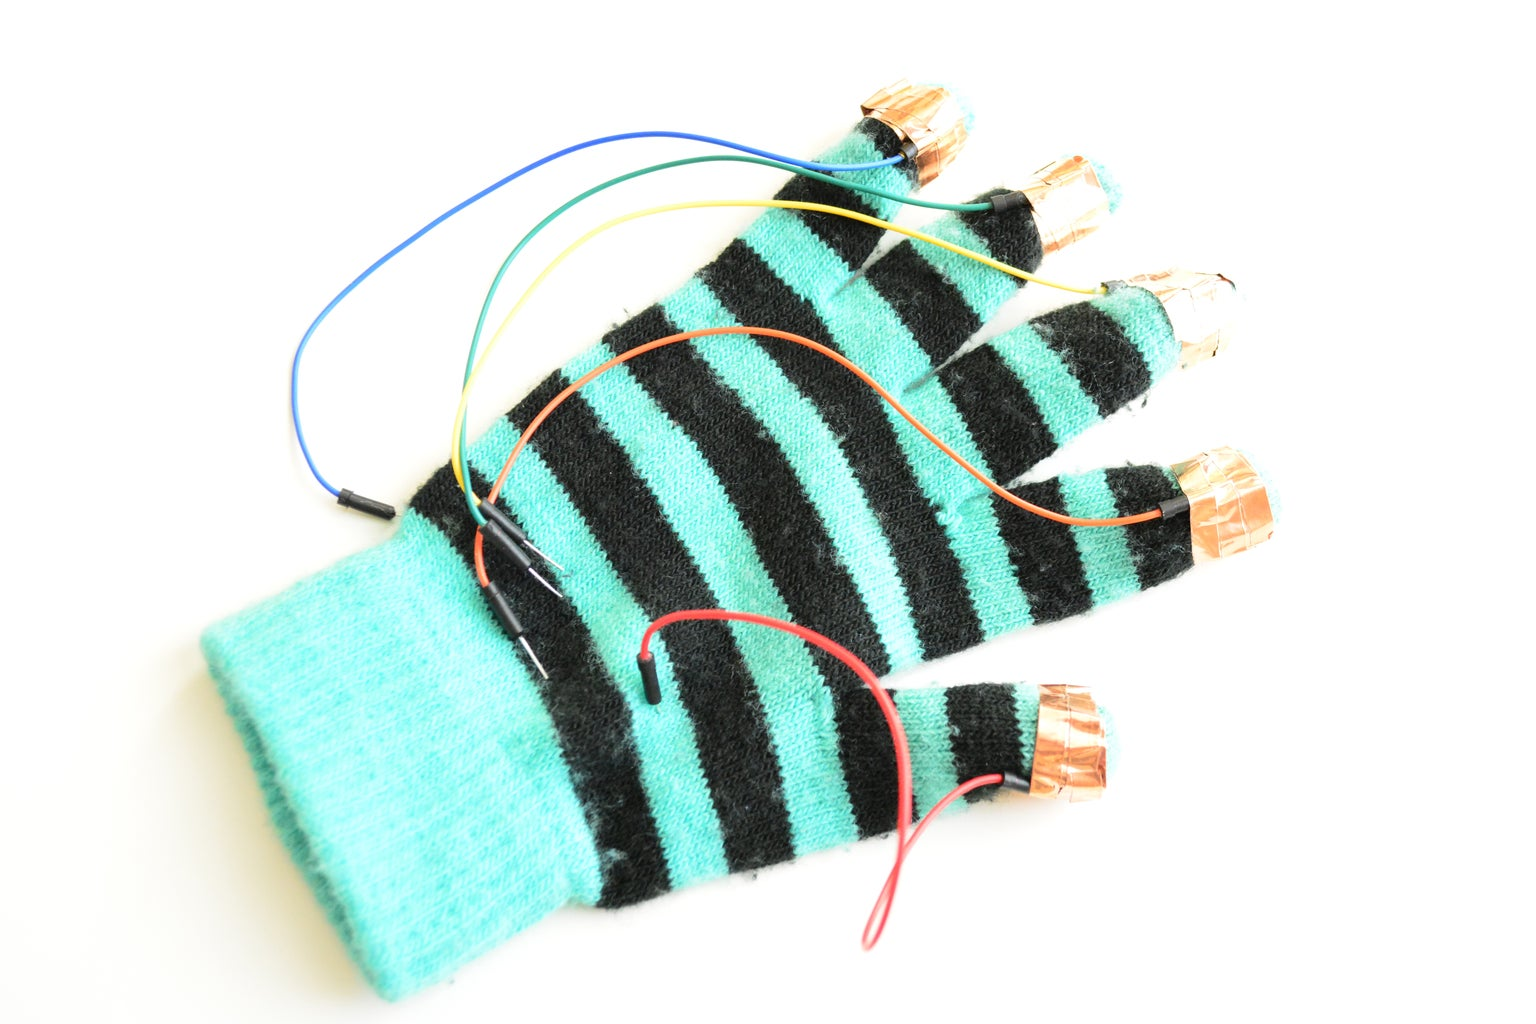 ATTACH JUMPER WIRES TO FINGER TIPS WITH COPPER TAPE